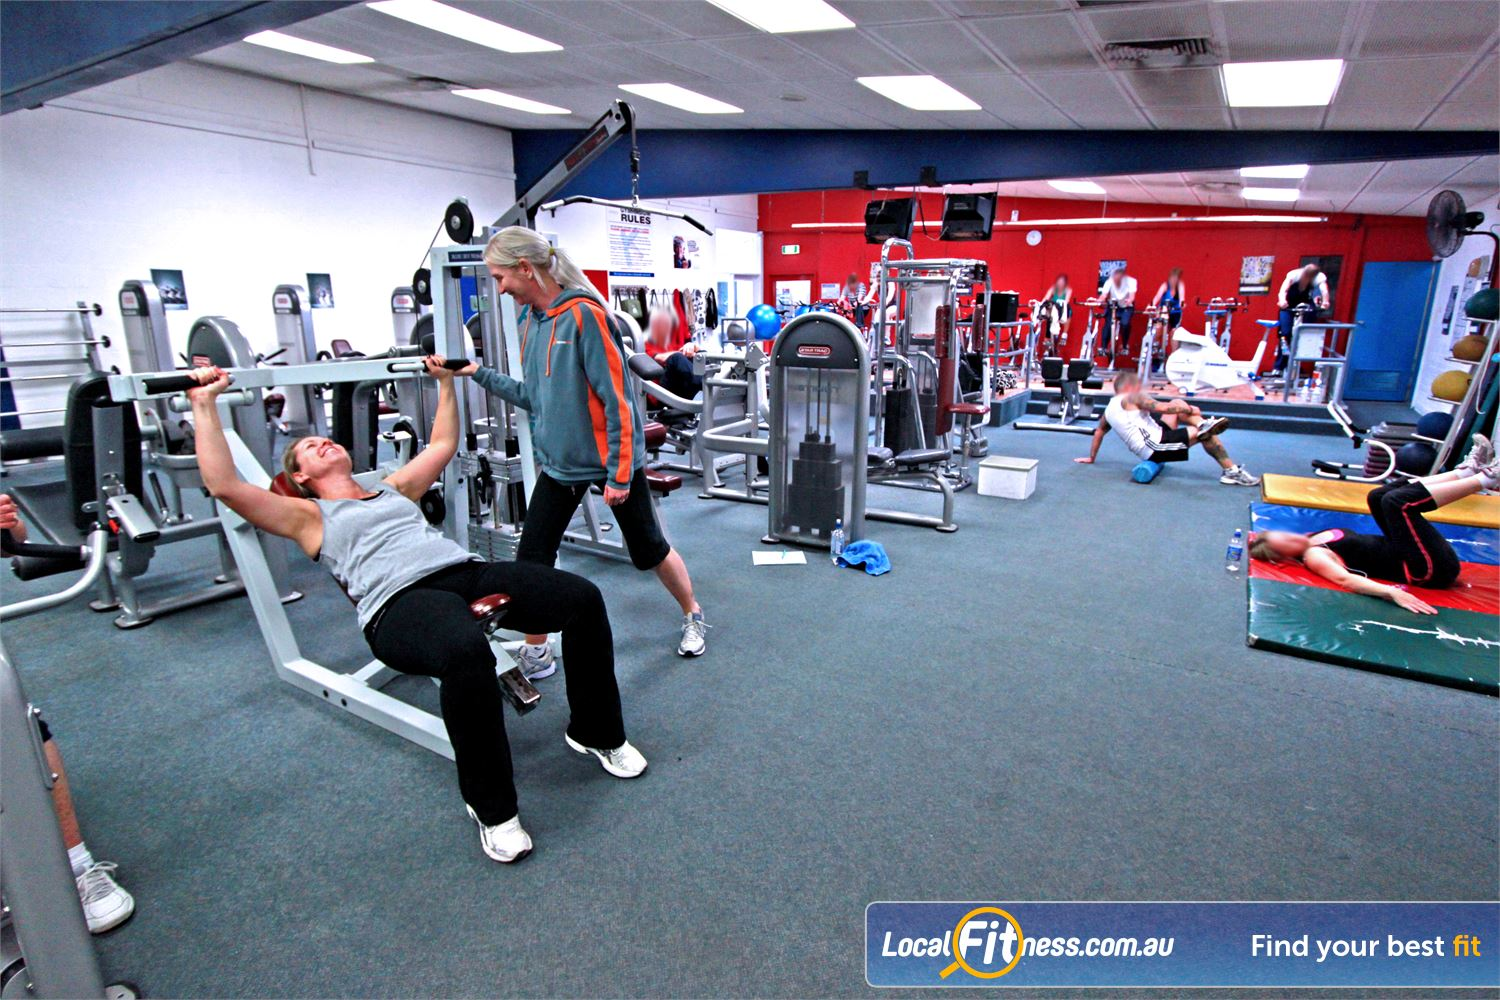 East Keilor Leisure Centre Keilor East Our friendly East Keilor personal trainers will help you reach your strength goals.